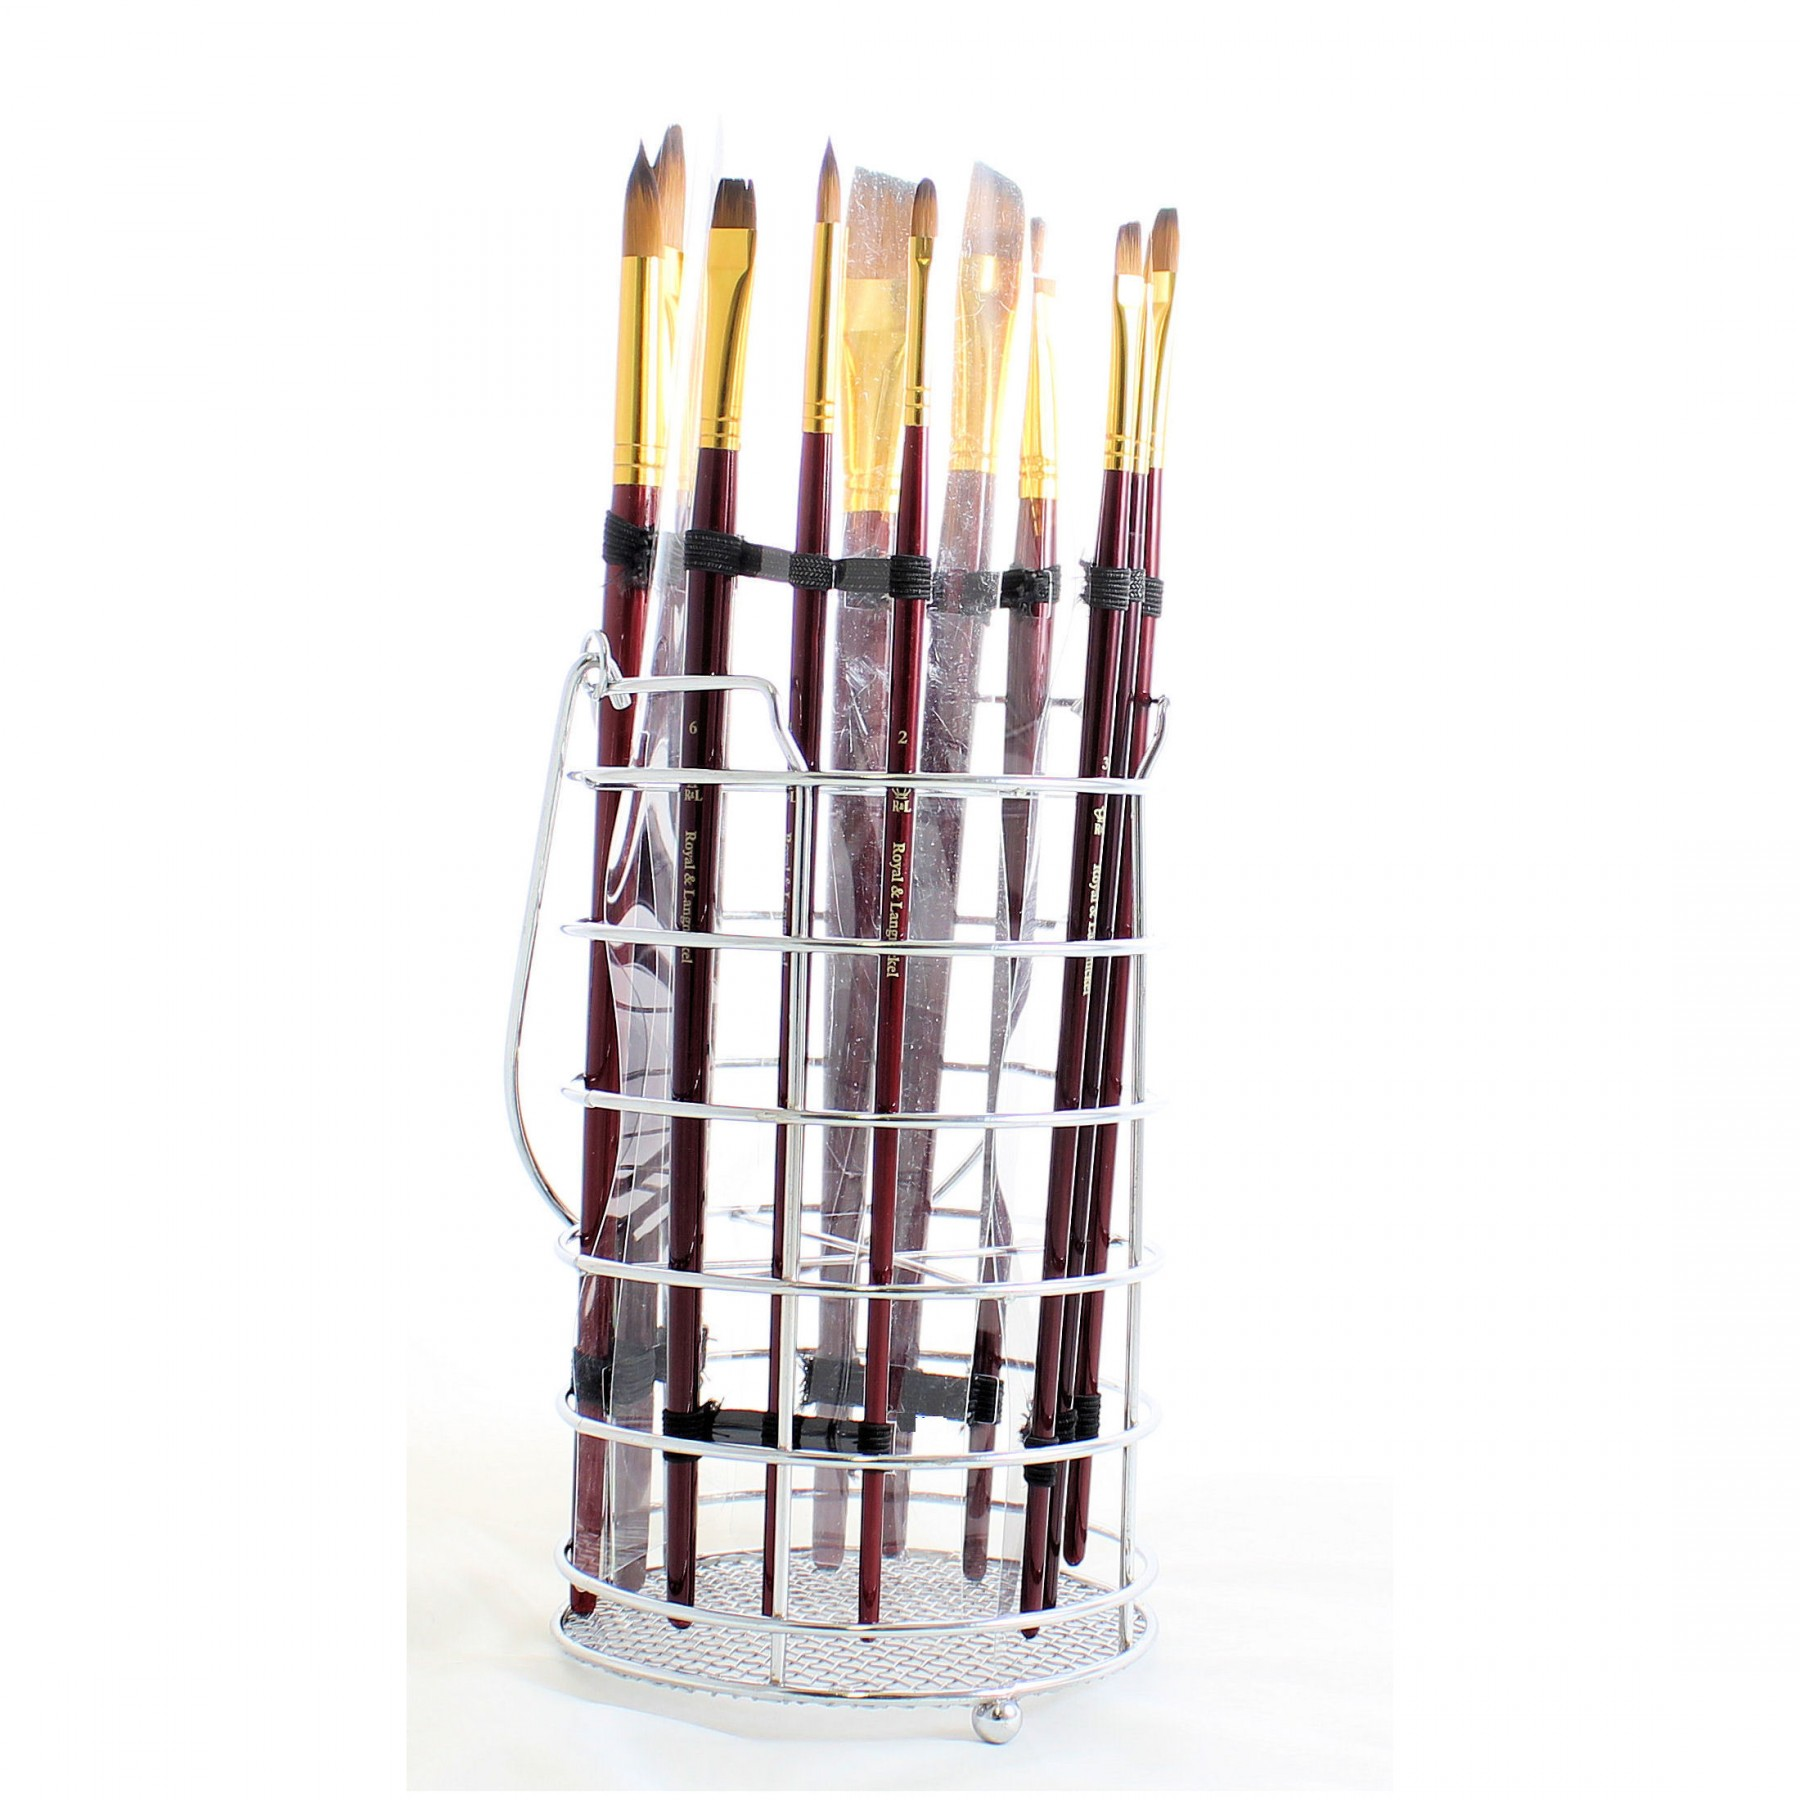 Studio  Paint Brush Caddy